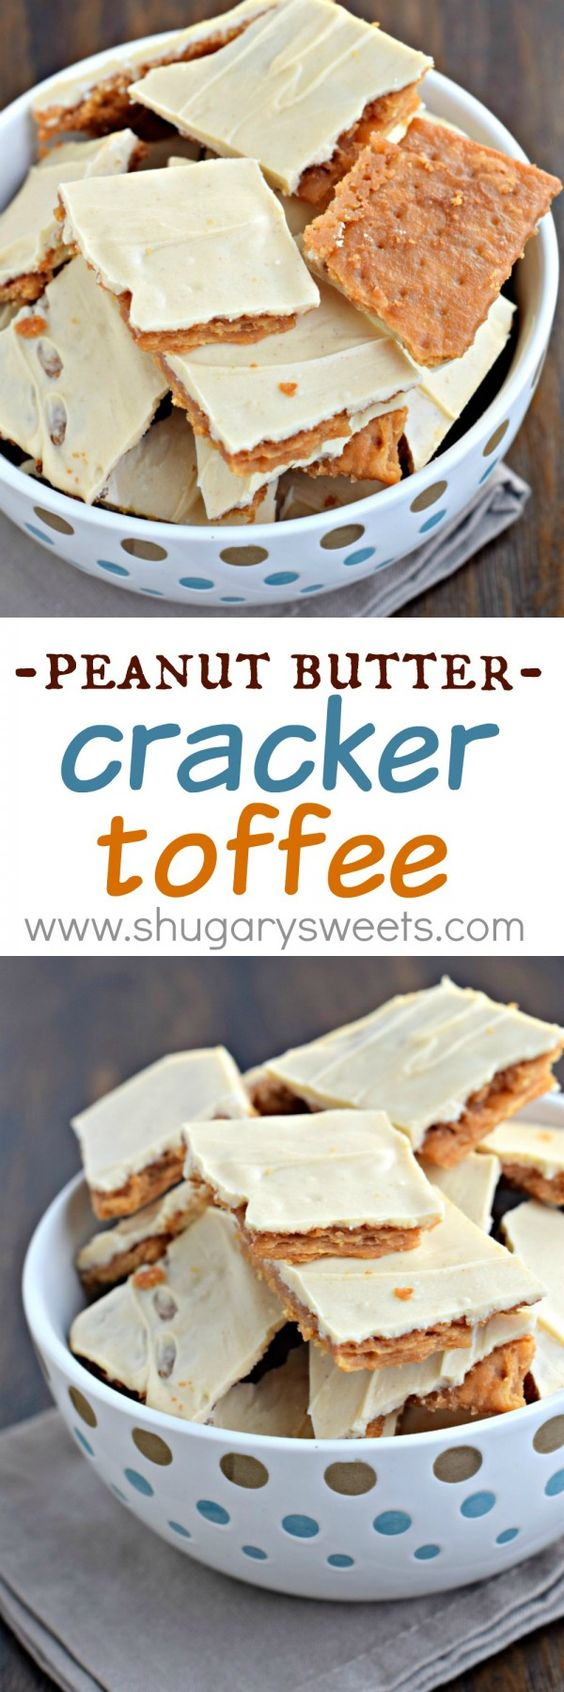 Peanut Butter Cracker Toffee: so simple to make, yet melt in your mouth delicious! This easy toffee recipe is made with crackers!